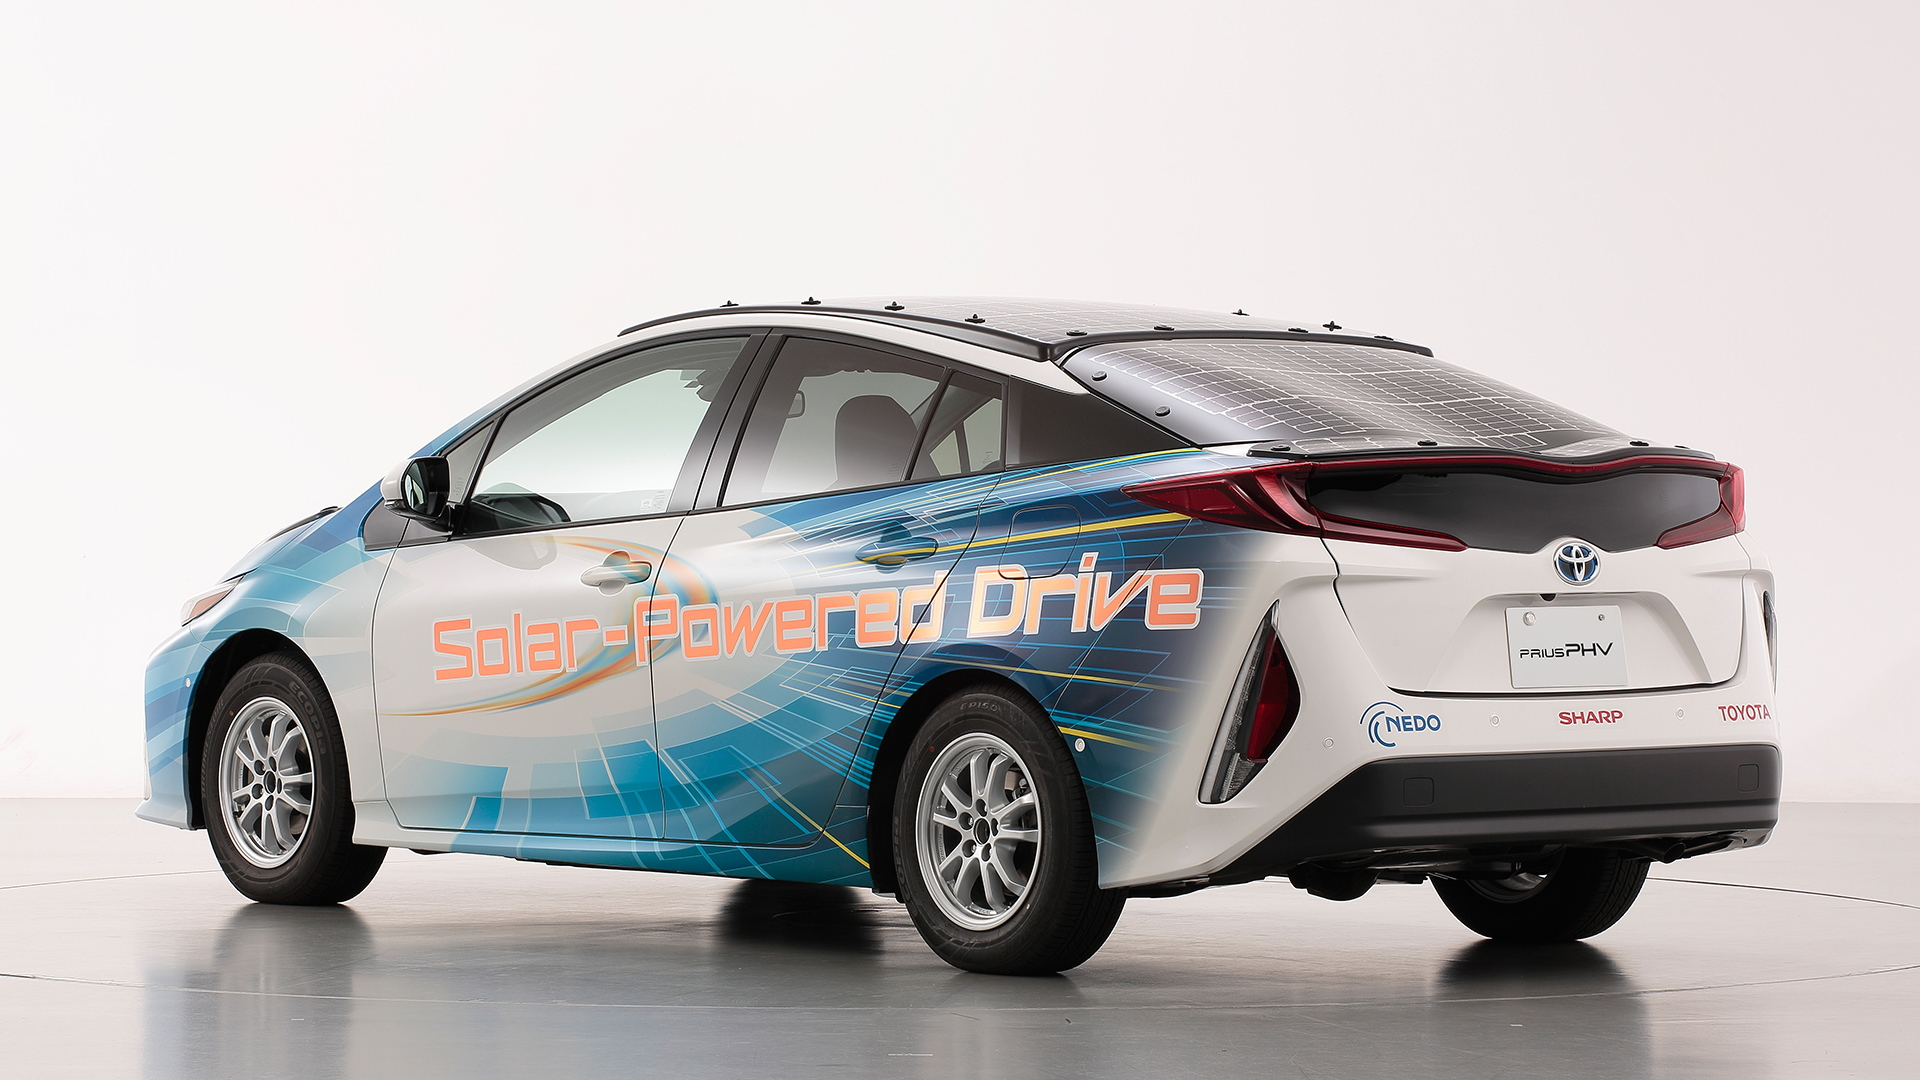 Toyota Prius Prime PHV test vehicle with solar panels in Japan